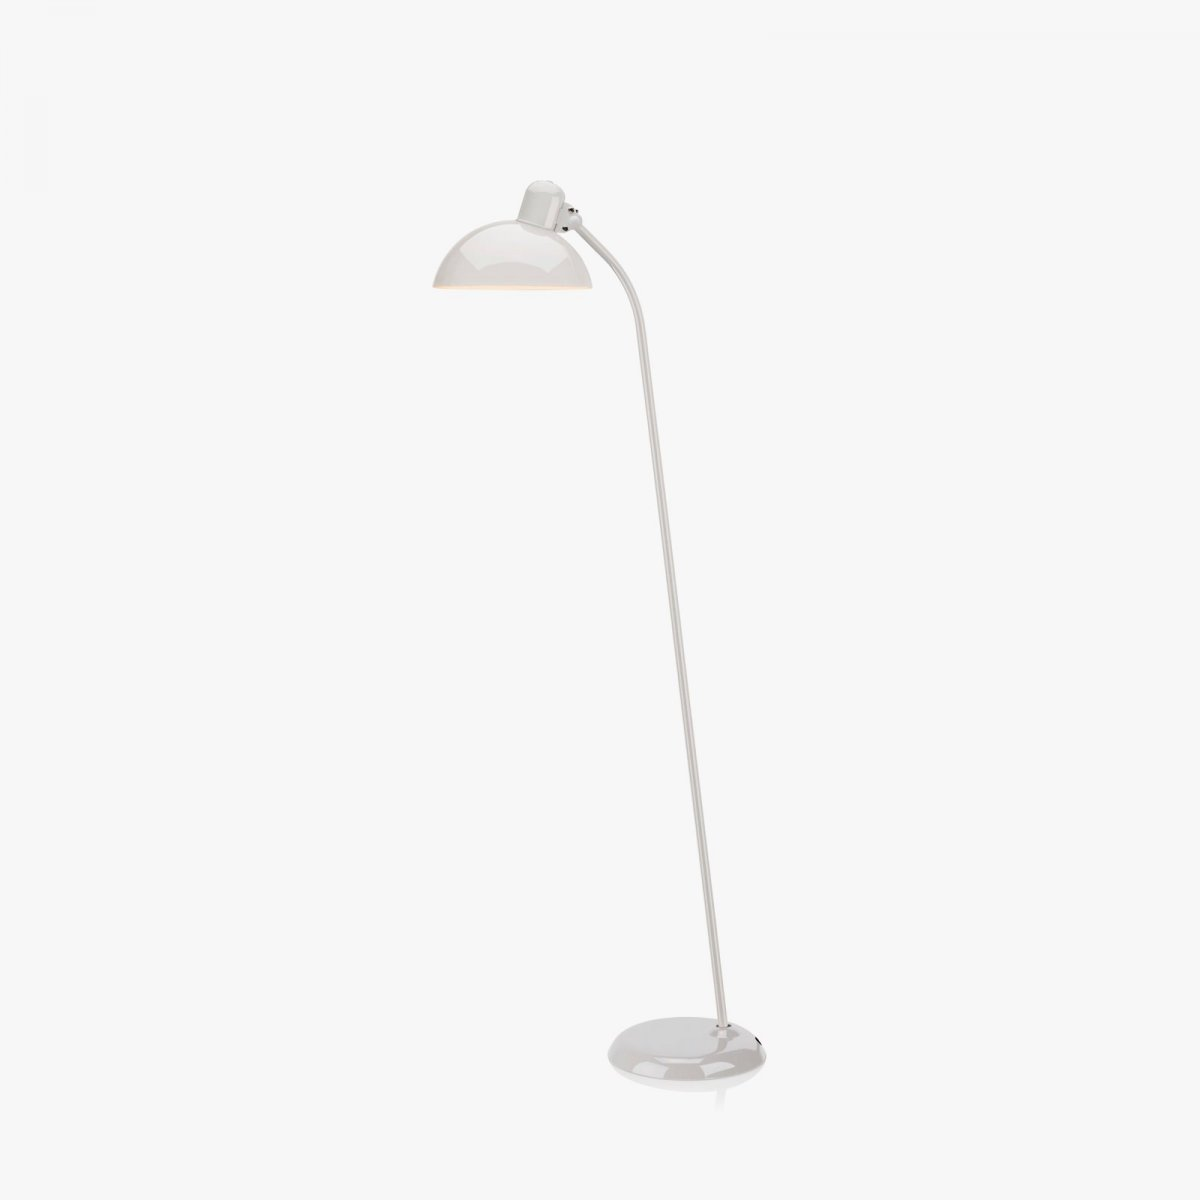 Kaiser Idell 6556-F tiltable floor lamp, white.